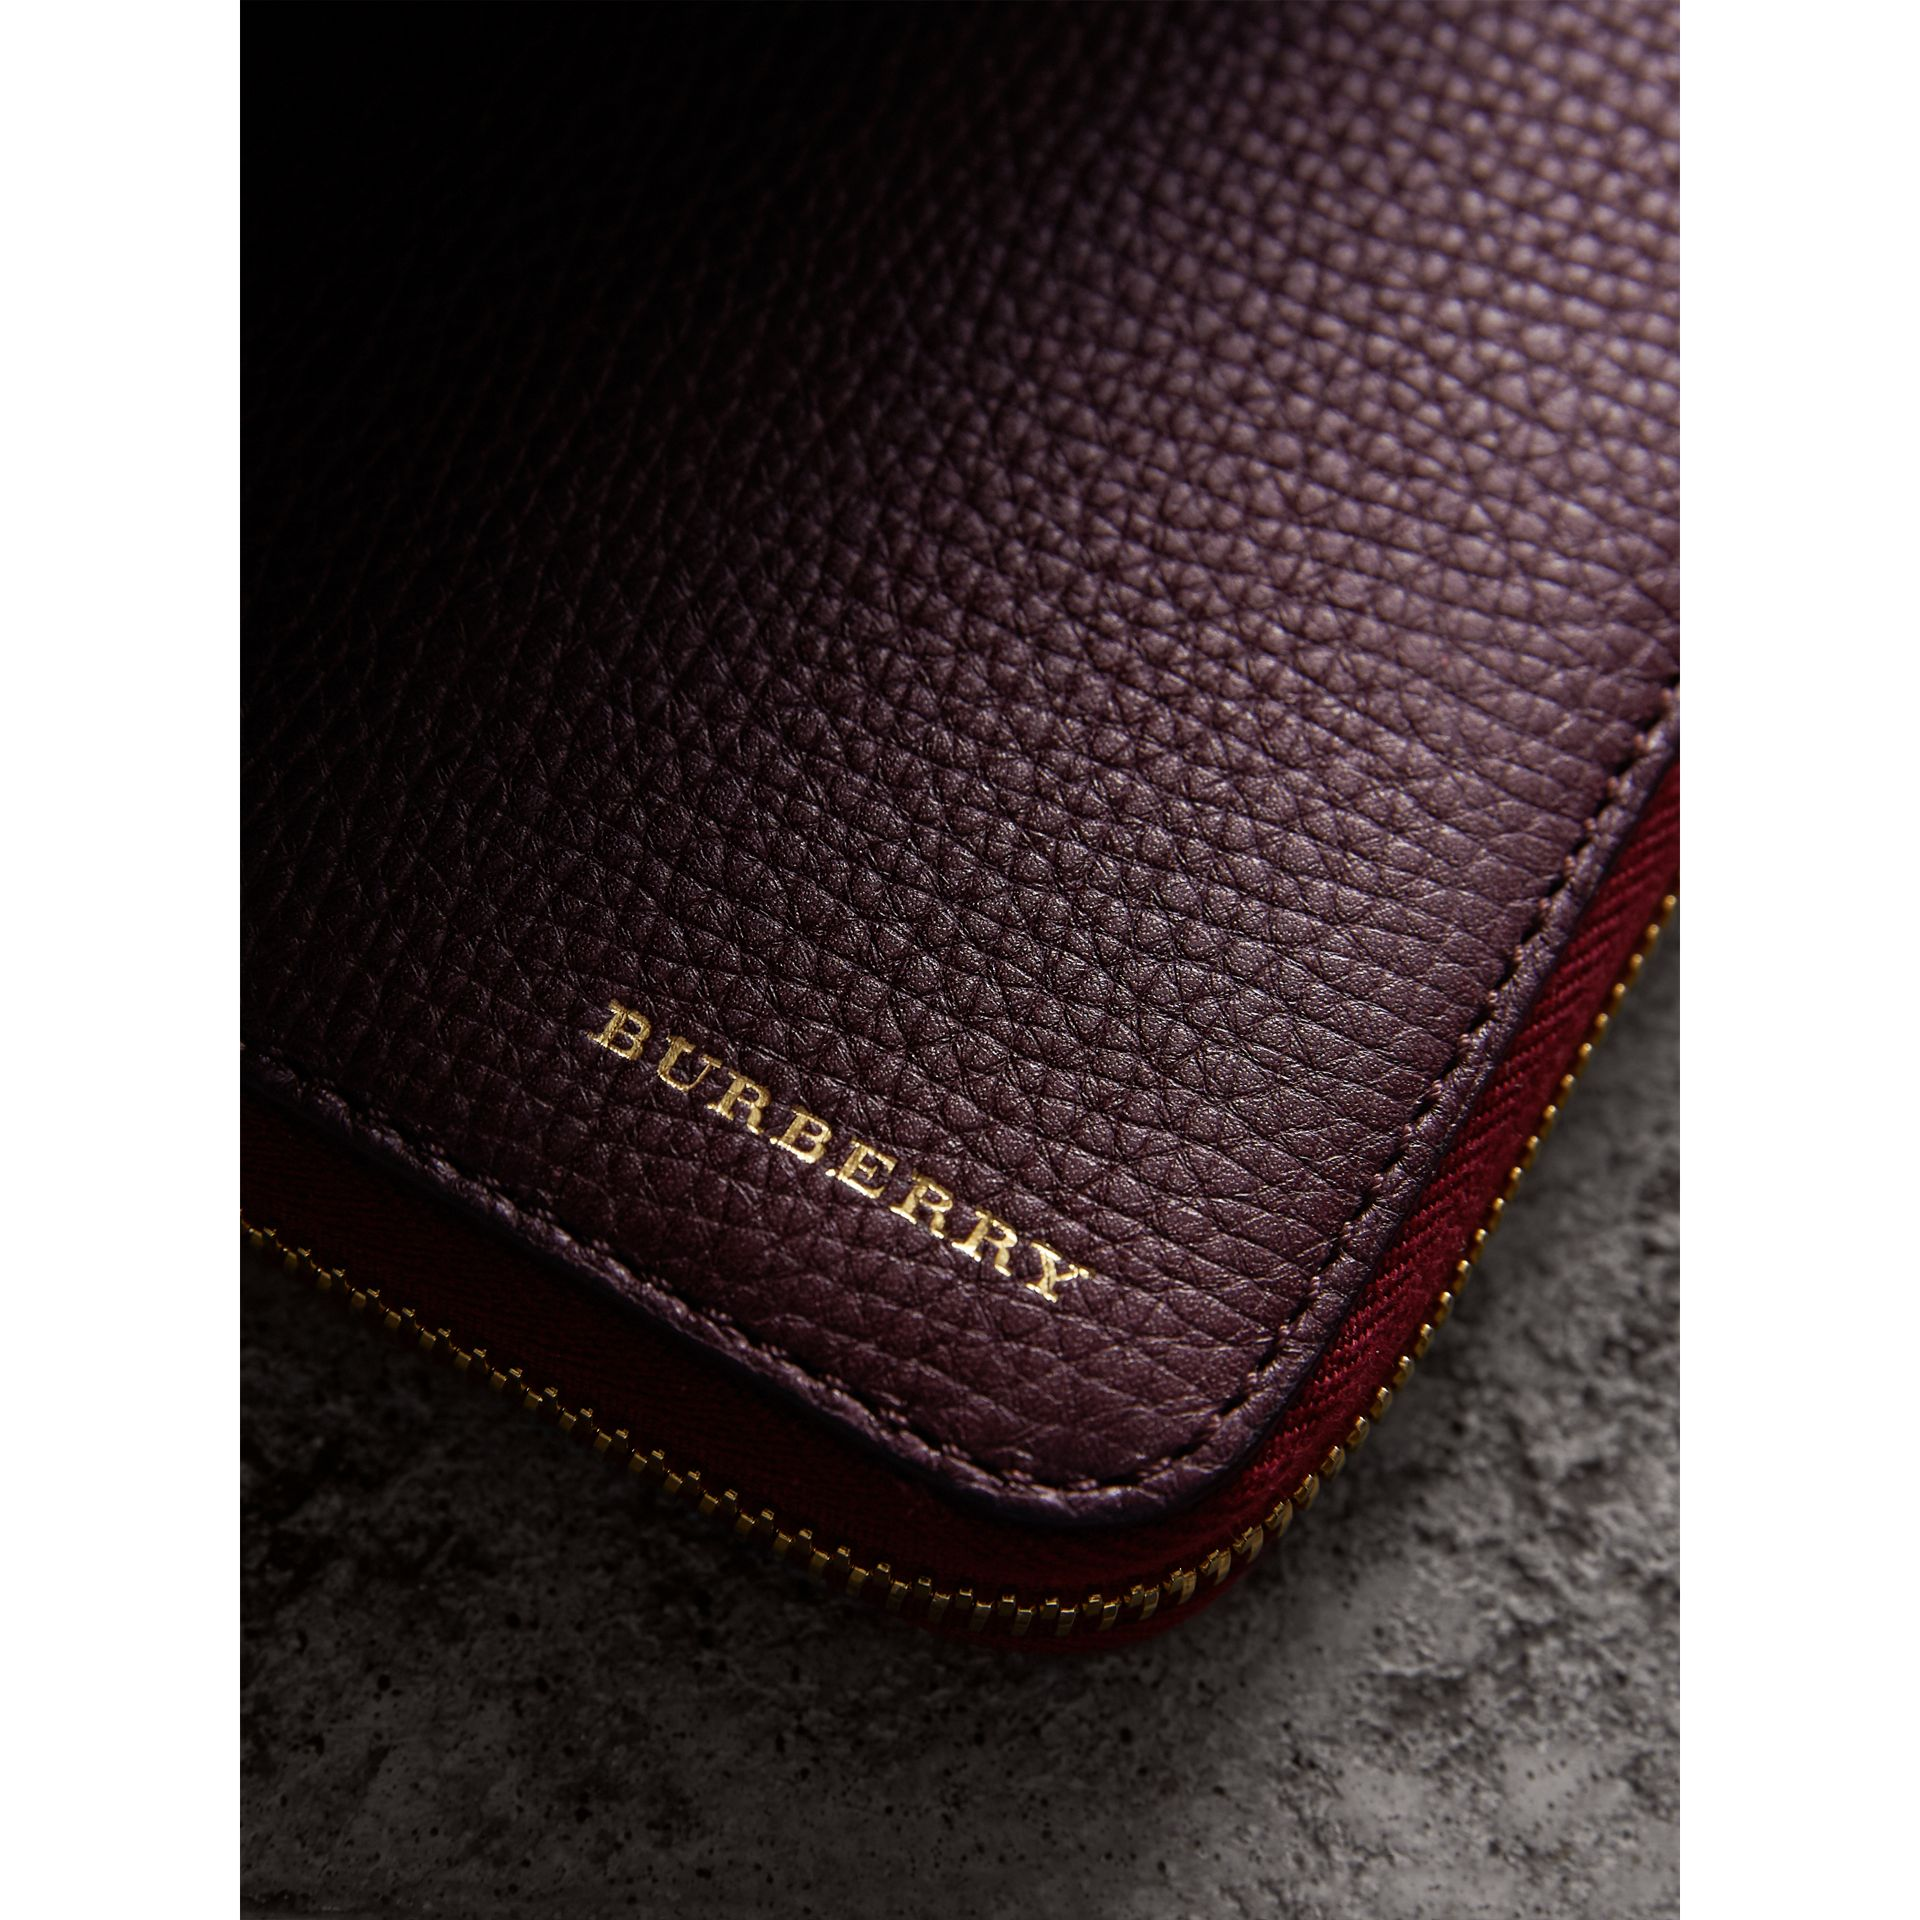 House Check and Grainy Leather Ziparound Wallet in Wine | Burberry United Kingdom - gallery image 1